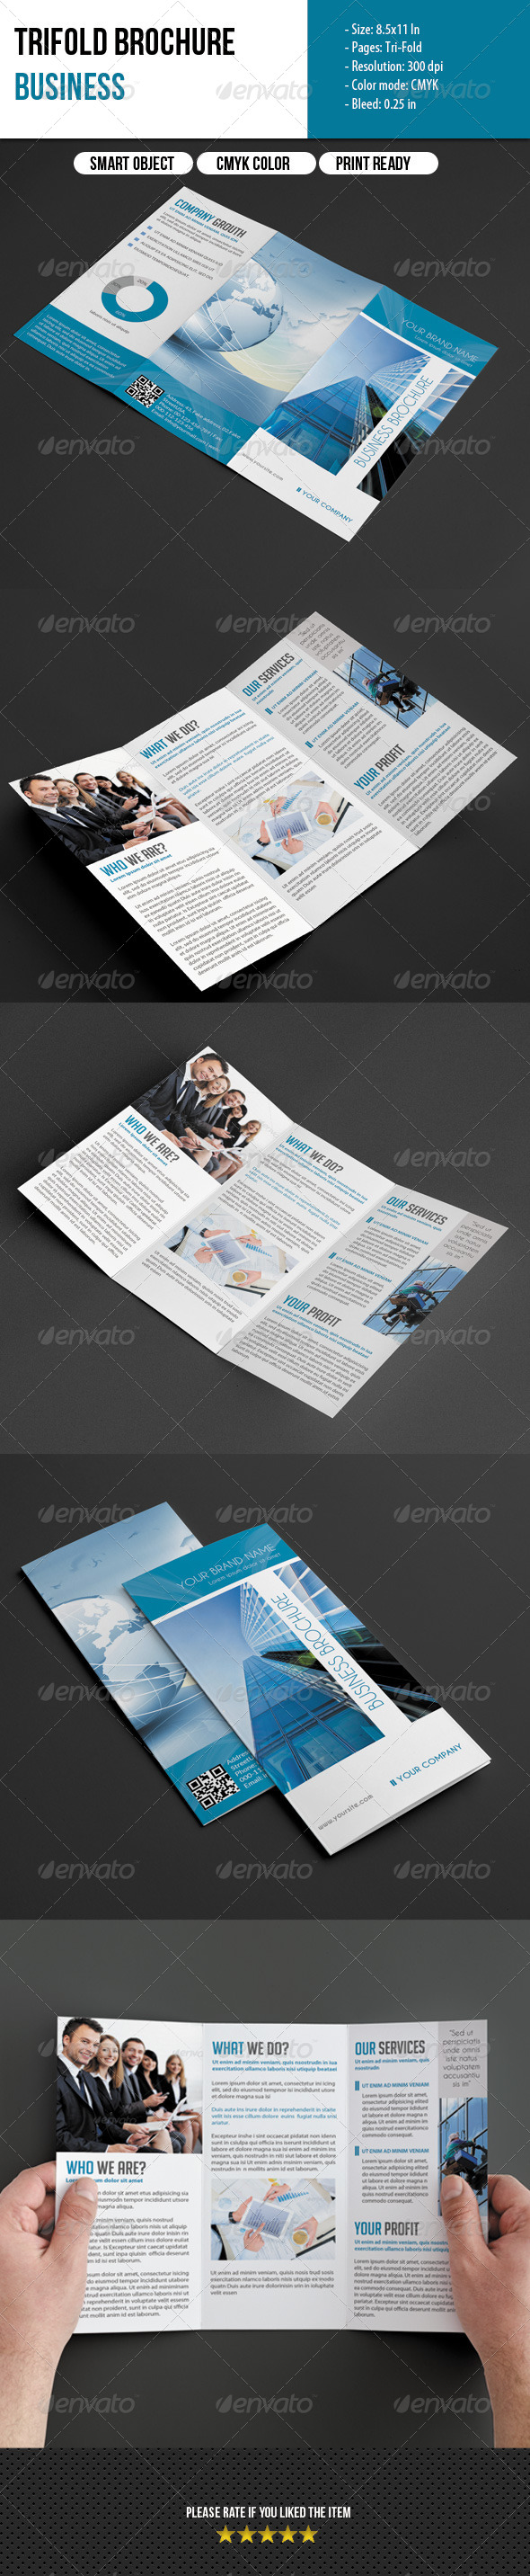 Trifold Brochure-Business